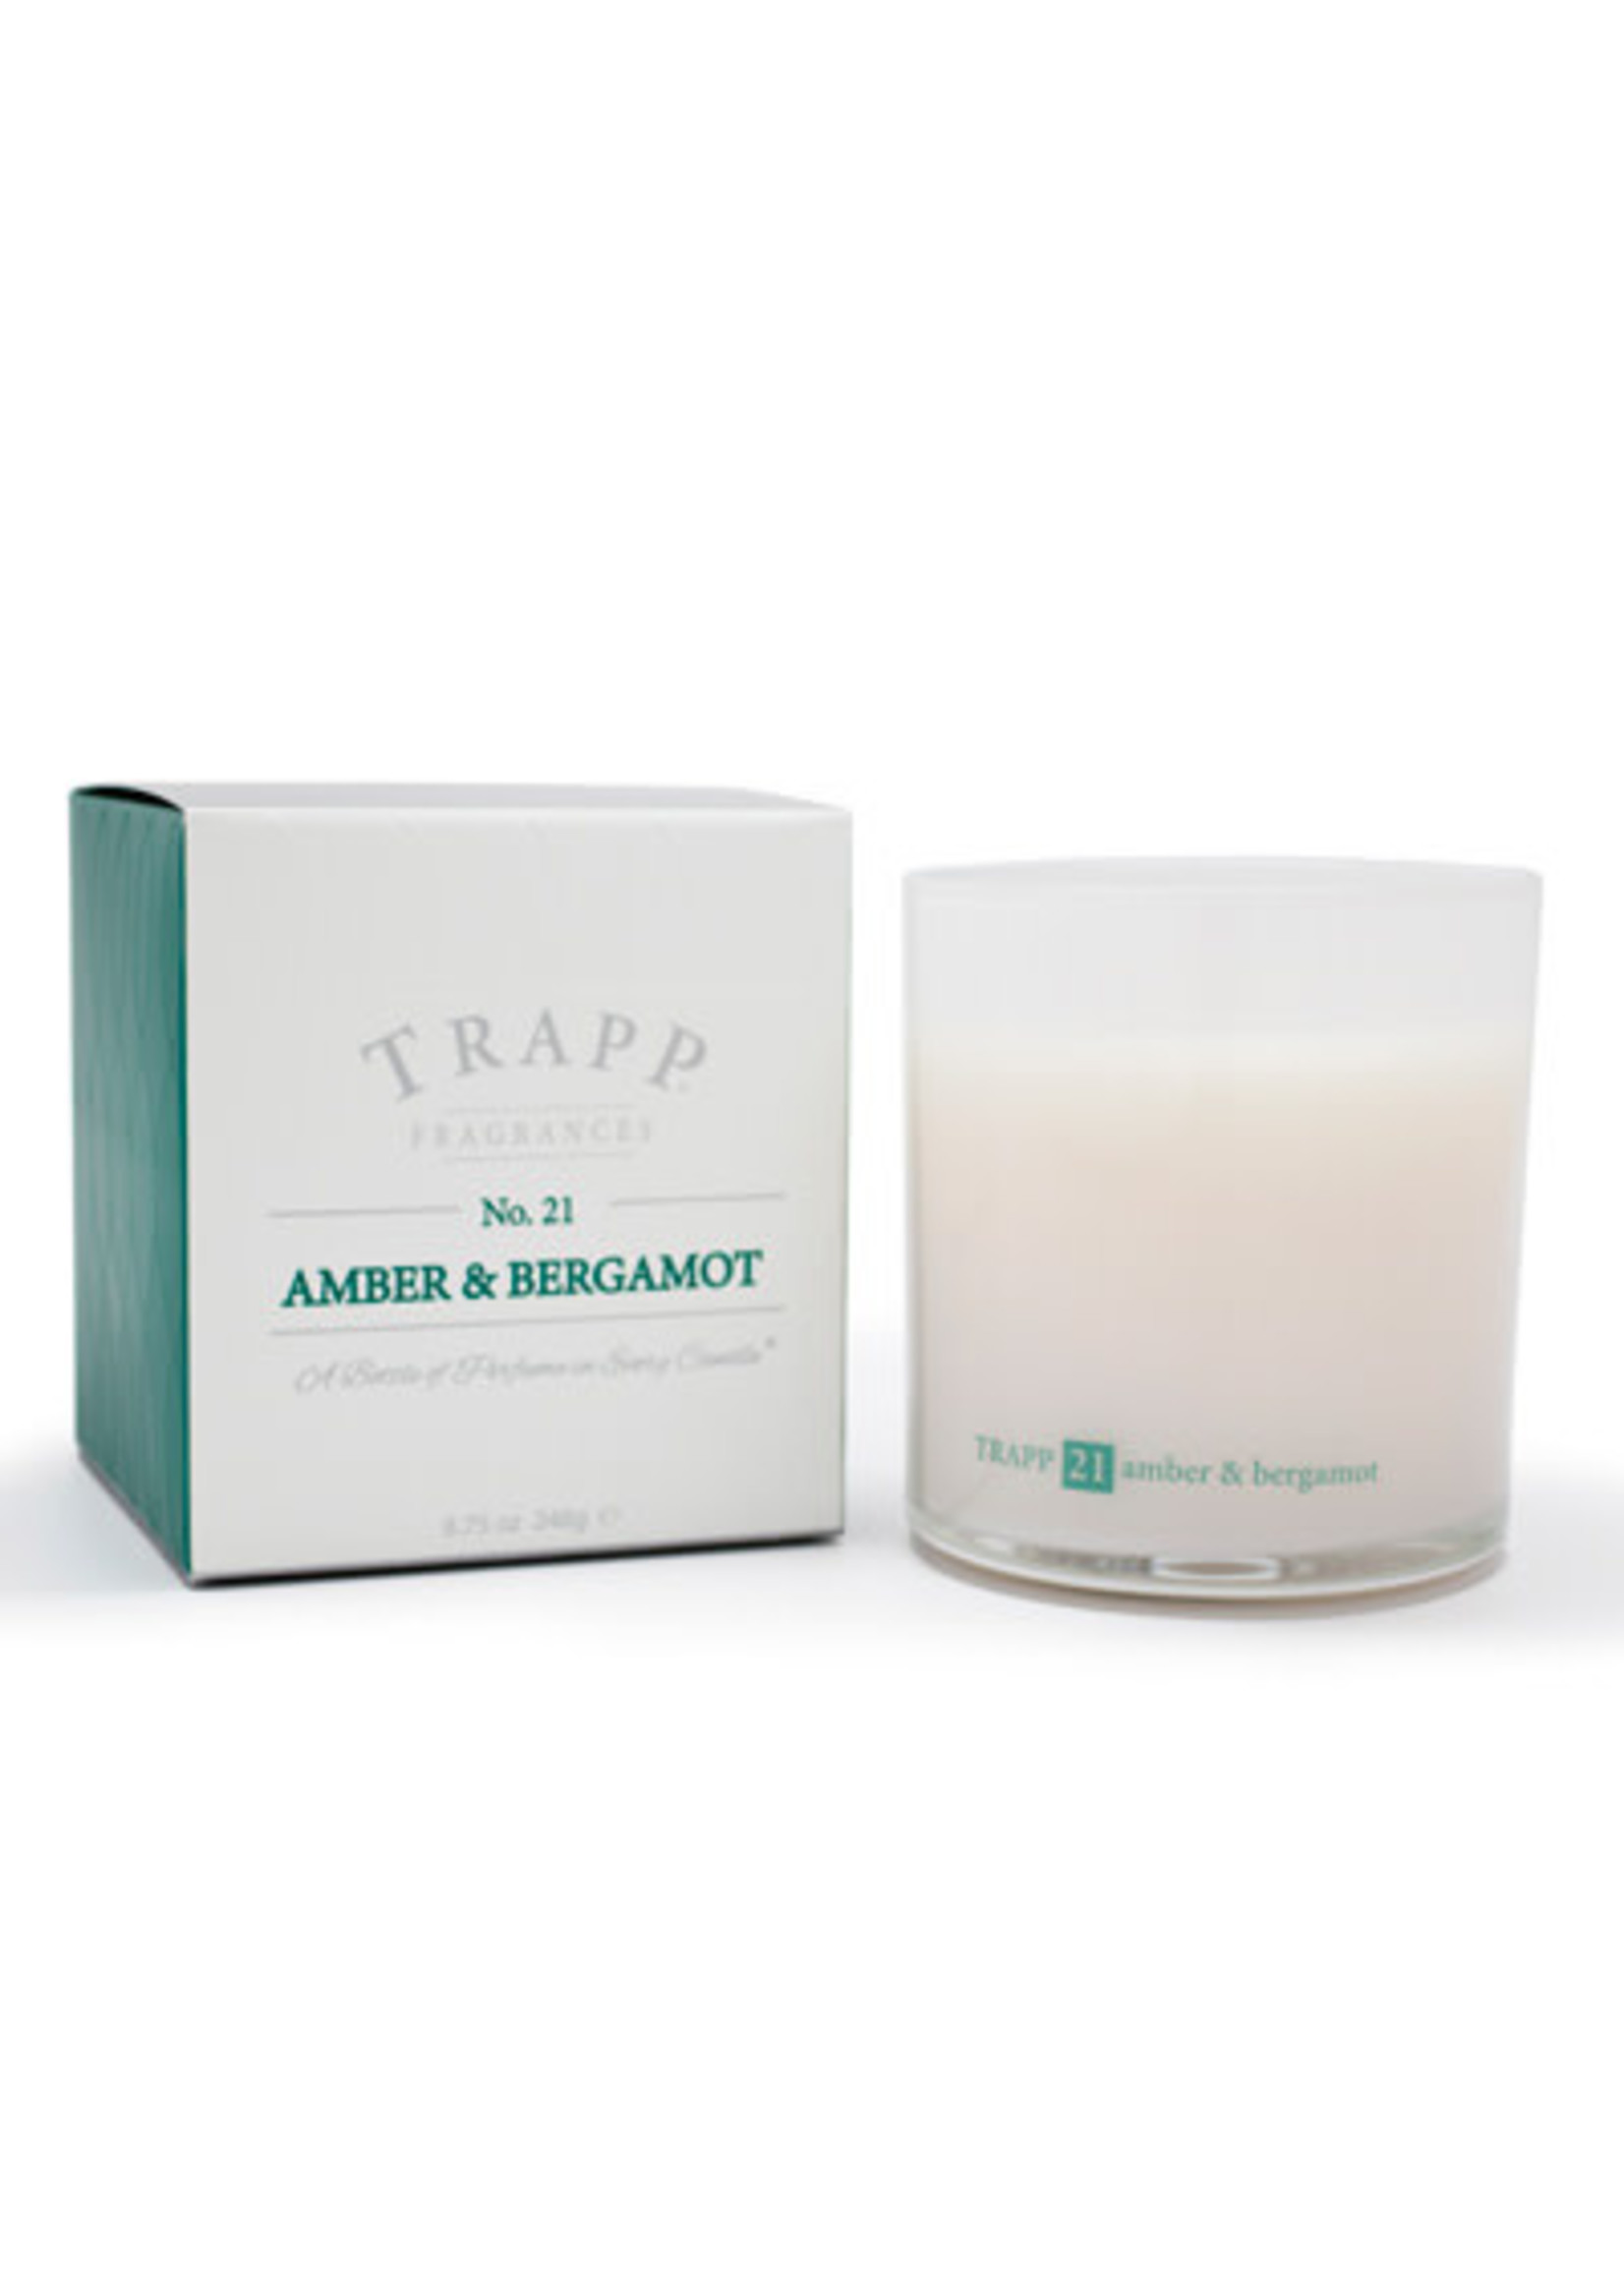 Trapp Candles Ambiance Collection - No. 21 Amber Bergamot - 8.75 oz. Poured Candle